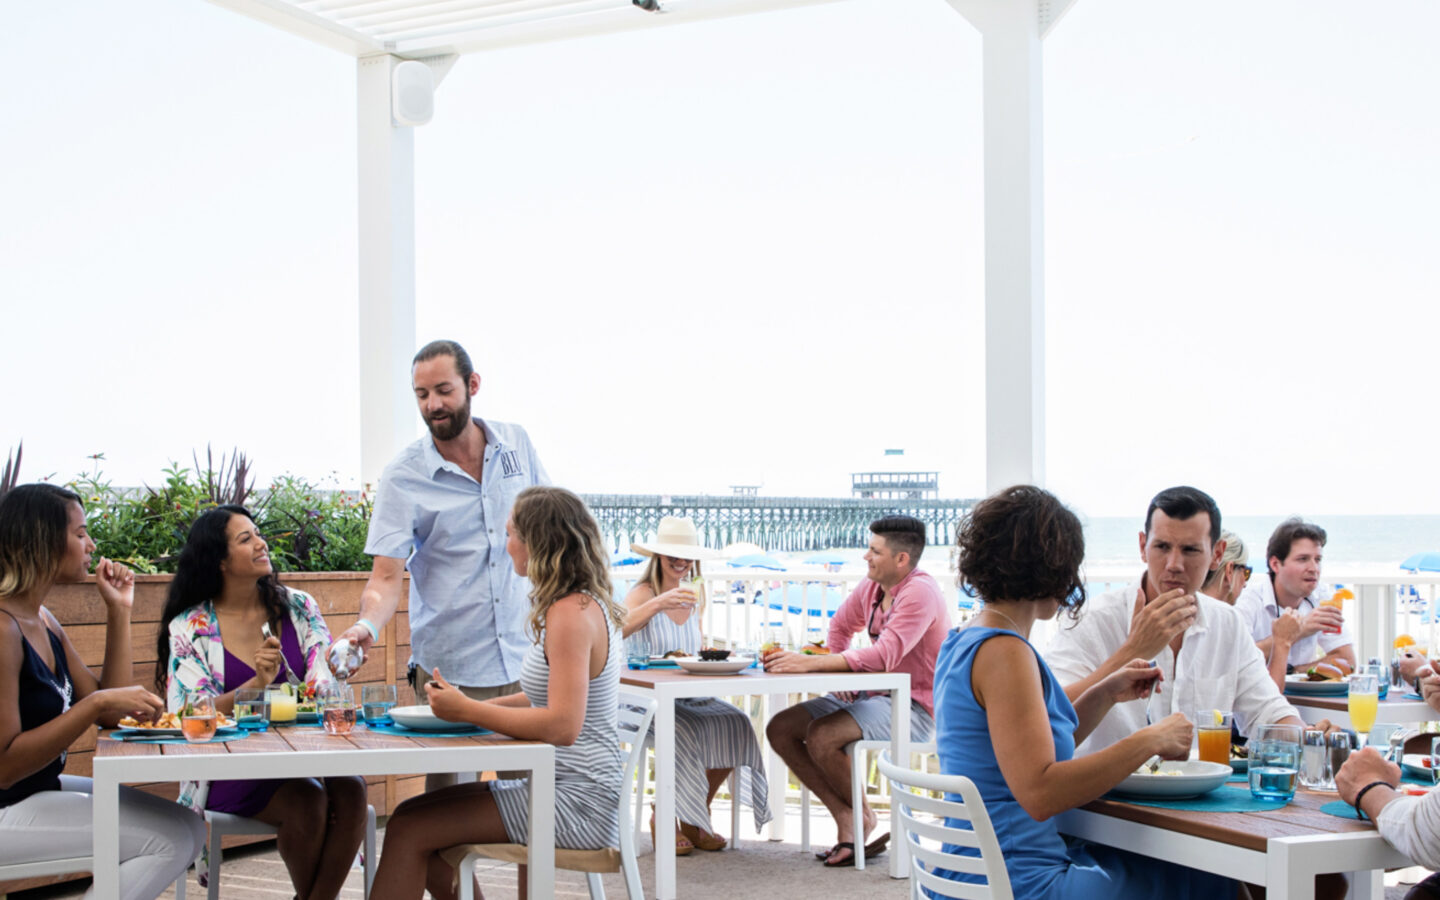 tables of diners eating on an outside beach-side pergola